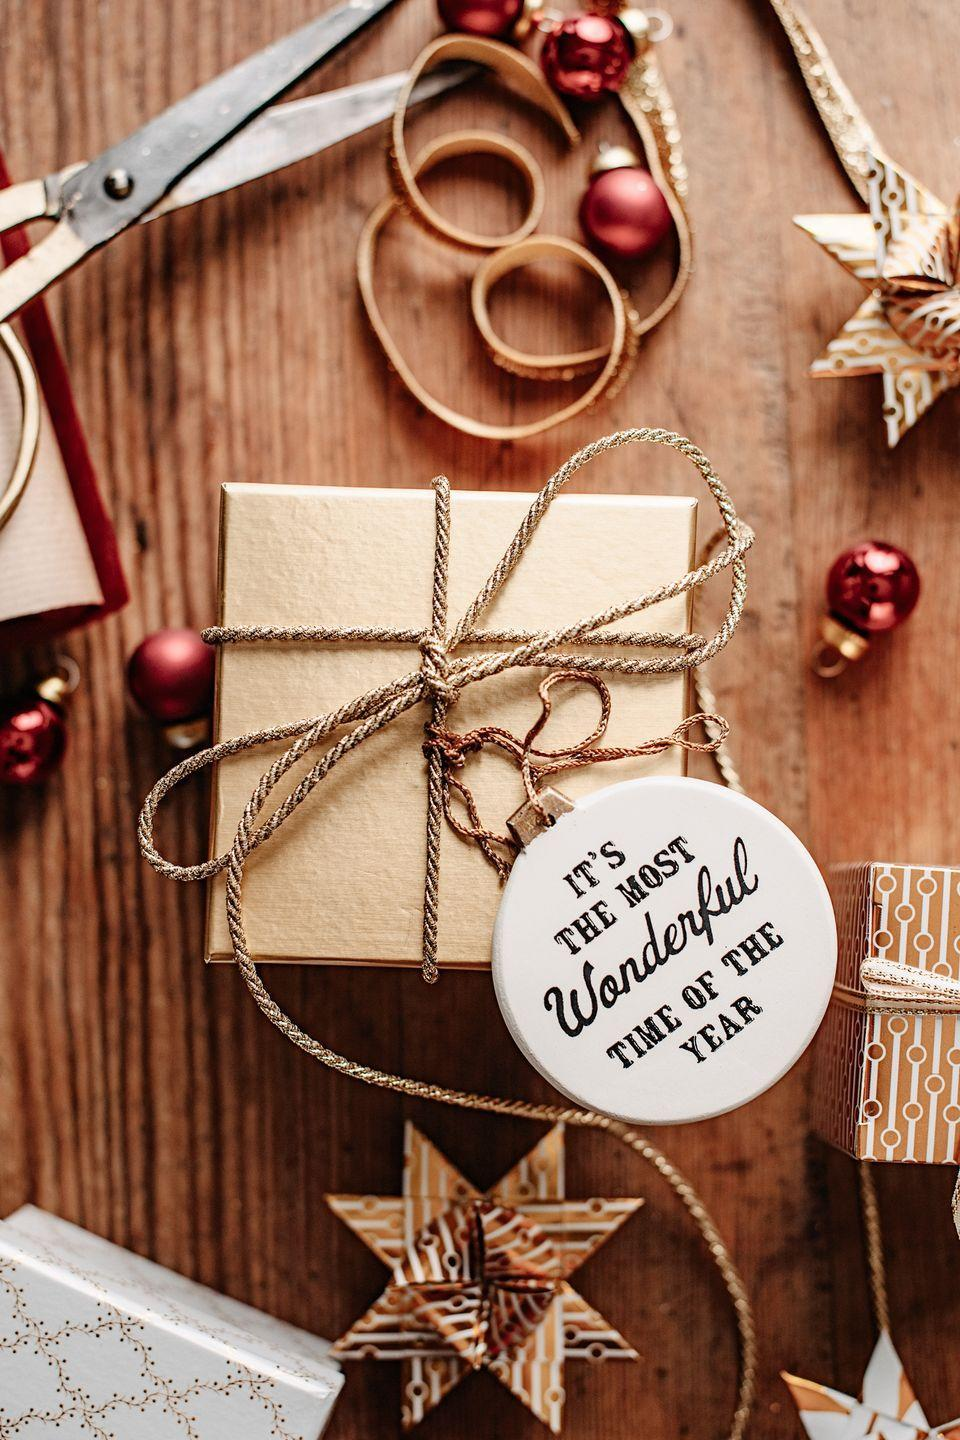 """<p>Only have plain packaging at your disposal? Seal the deal with a festive token they'll reach for year after year. </p><p><a class=""""link rapid-noclick-resp"""" href=""""https://www.amazon.com/Quarantine-Christmas-Ornaments-Quarantined-Distancing/dp/B08GZTZSTB?tag=syn-yahoo-20&ascsubtag=%5Bartid%7C10072.g.34015639%5Bsrc%7Cyahoo-us"""" rel=""""nofollow noopener"""" target=""""_blank"""" data-ylk=""""slk:SHOP ORNAMENT"""">SHOP ORNAMENT</a></p>"""